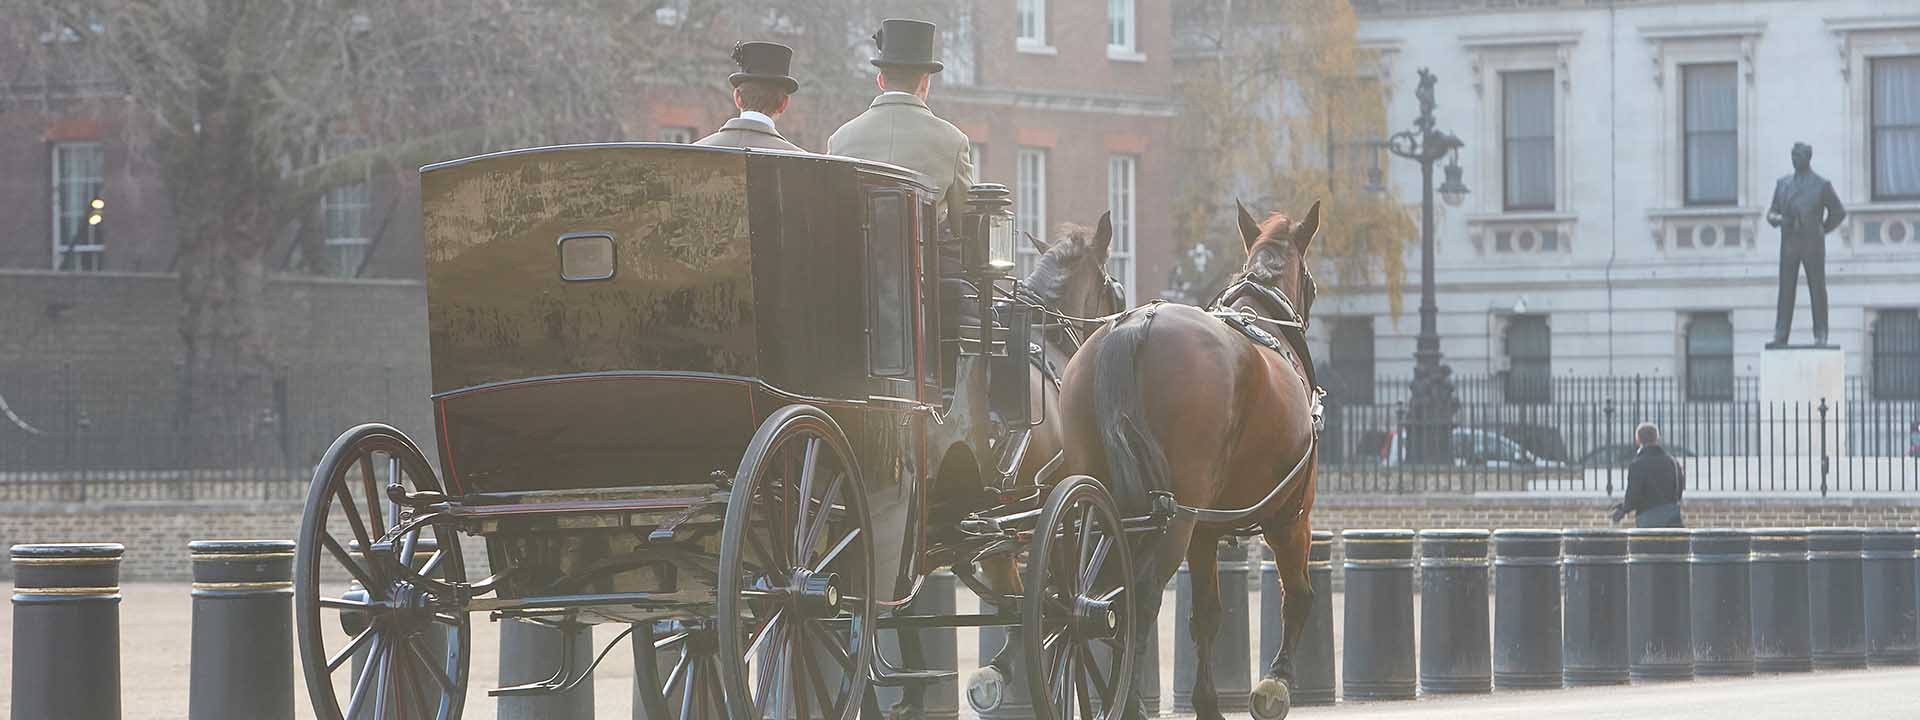 Concierge services, horse and carriage